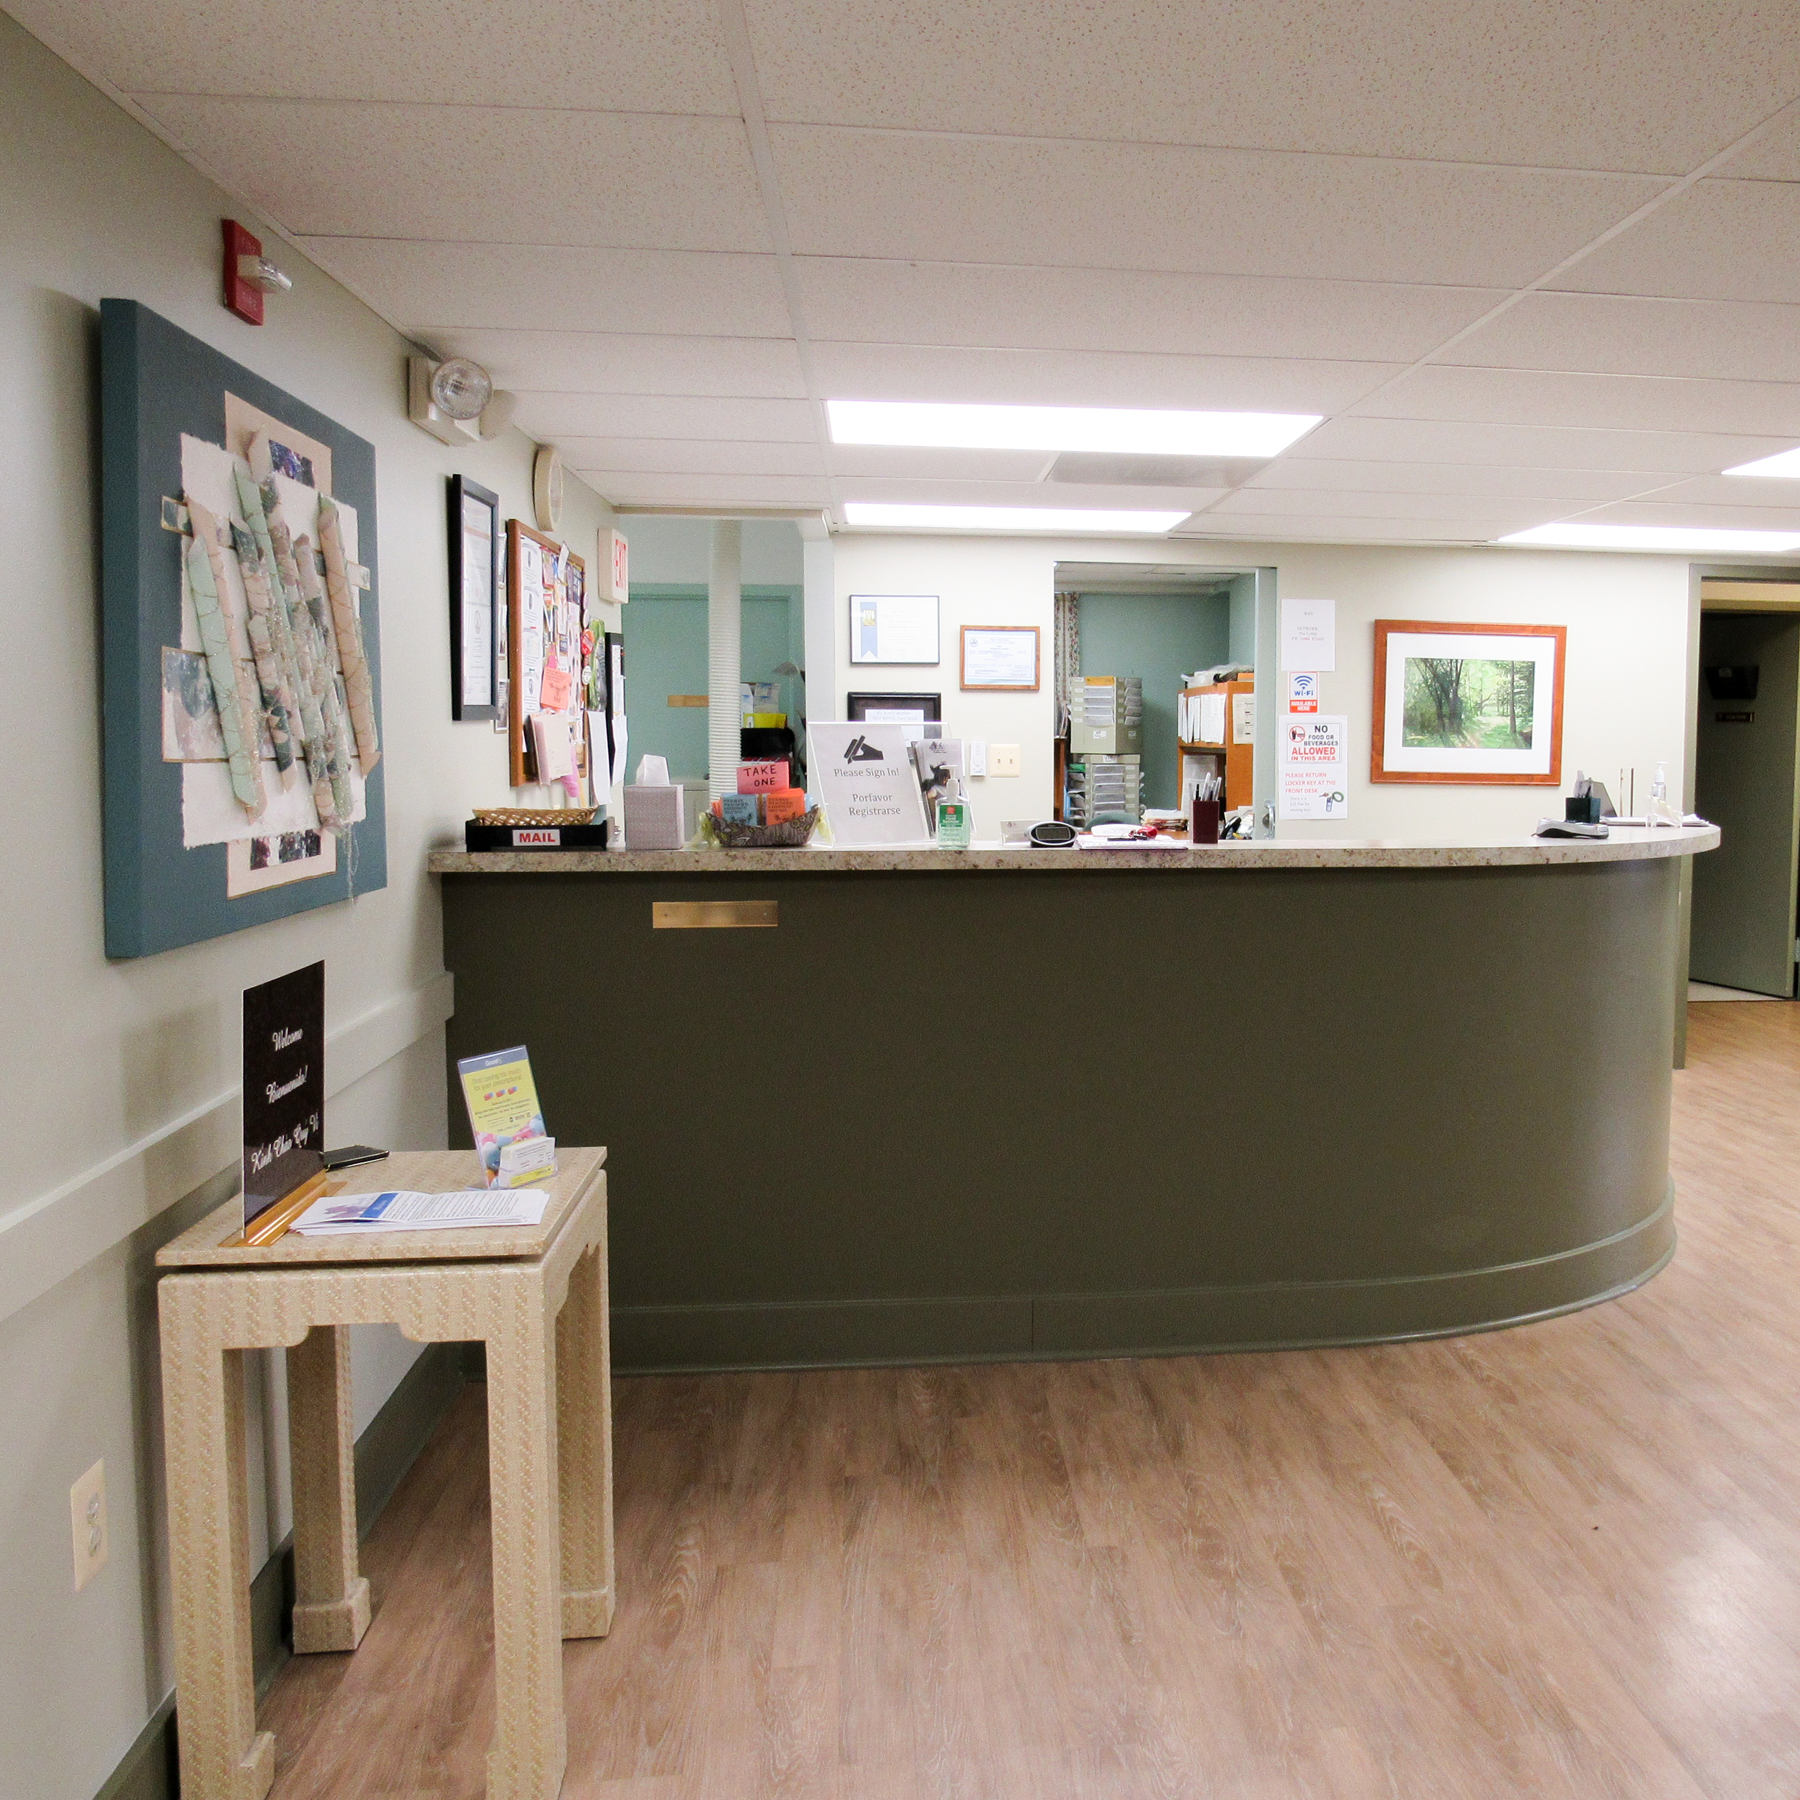 Tour Our Center - images of a SAFE and PRIVATE abortion clinic